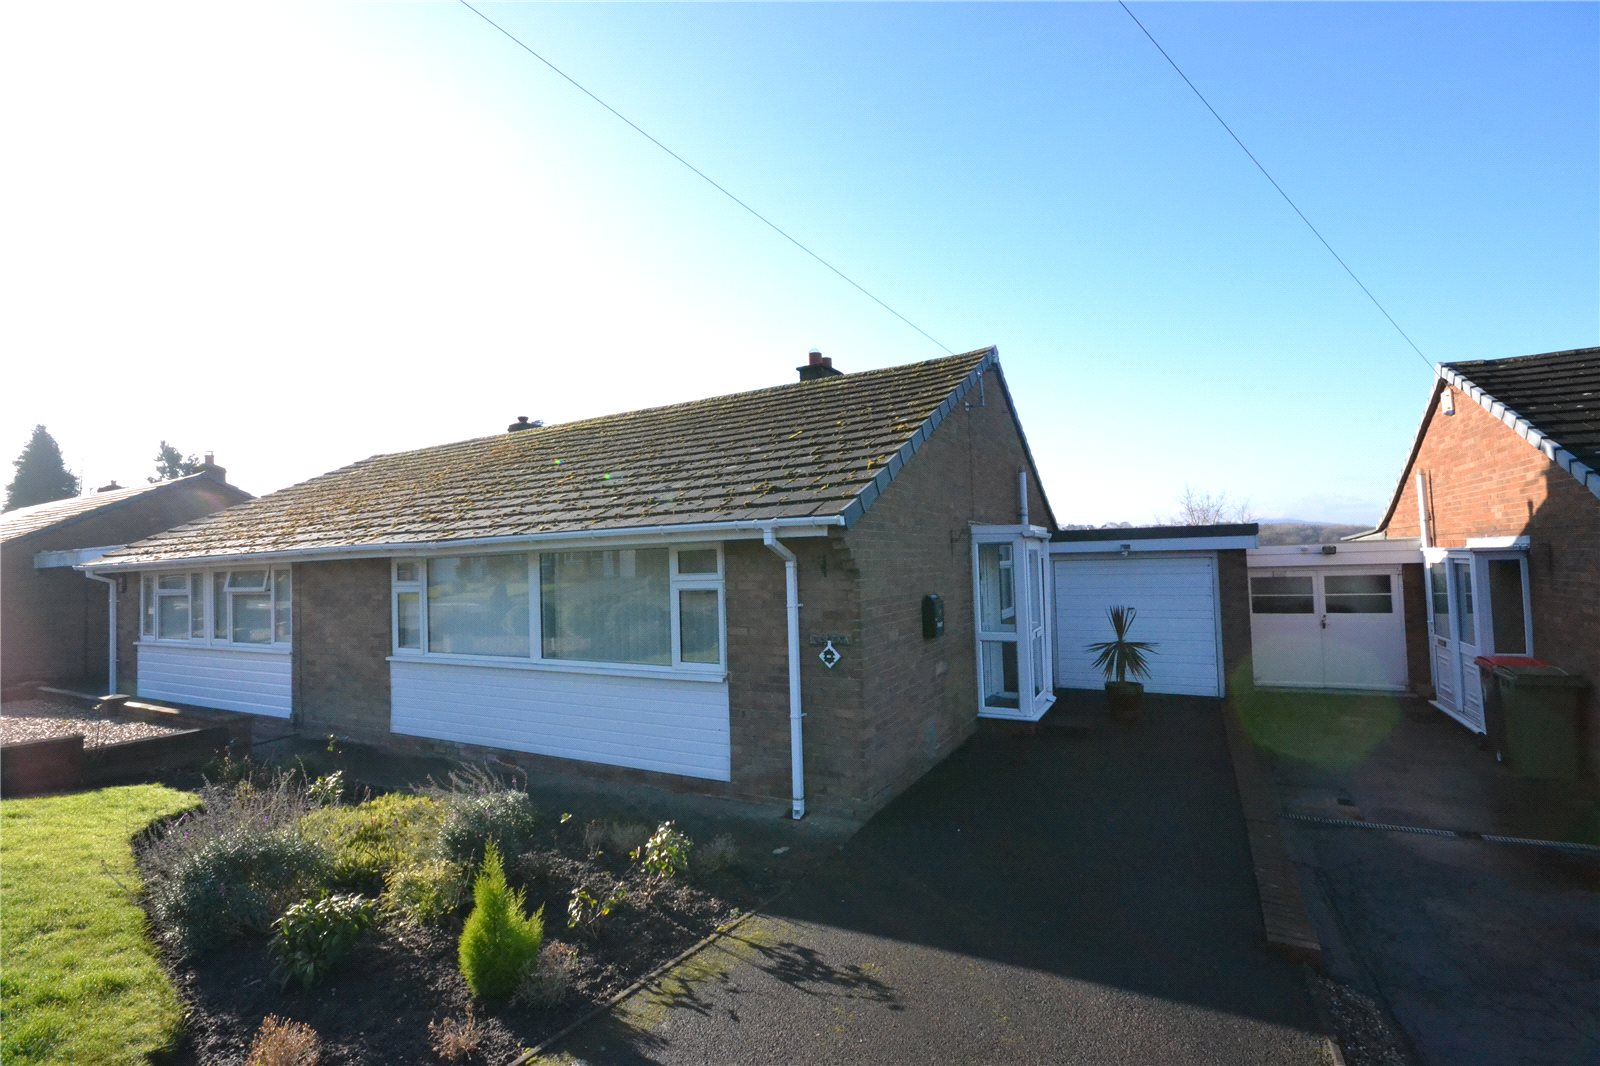 2 Bedrooms Semi Detached Bungalow for sale in 11 Willows Road, Oakengates, Telford, TF2